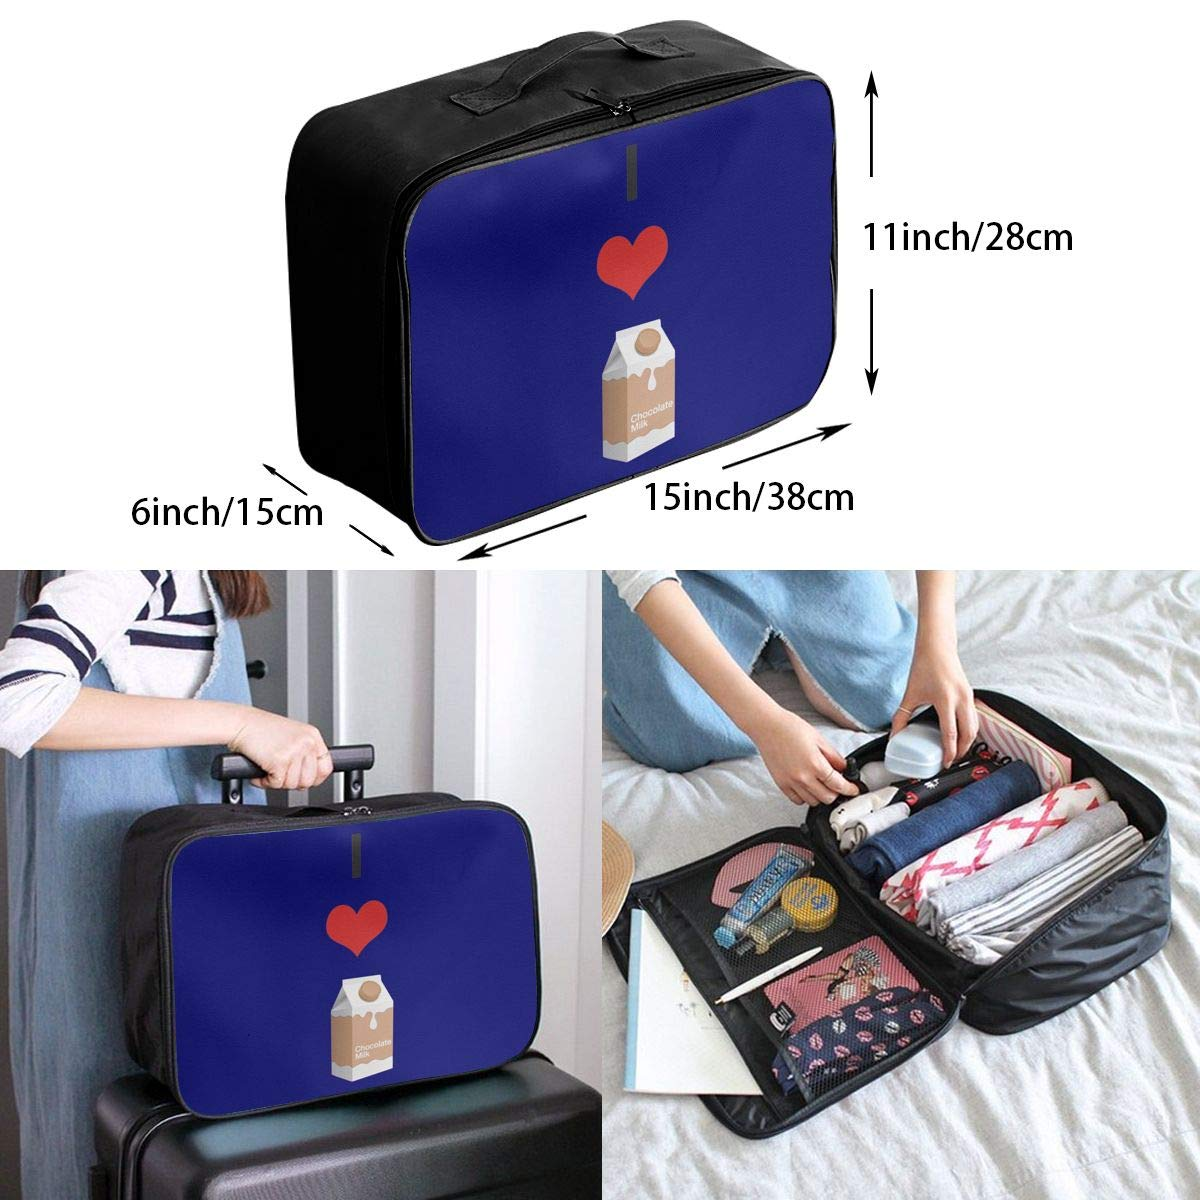 Travel Luggage Duffle Bag Lightweight Portable Handbag I Love Choccy Milk Large Capacity Waterproof Foldable Storage Tote